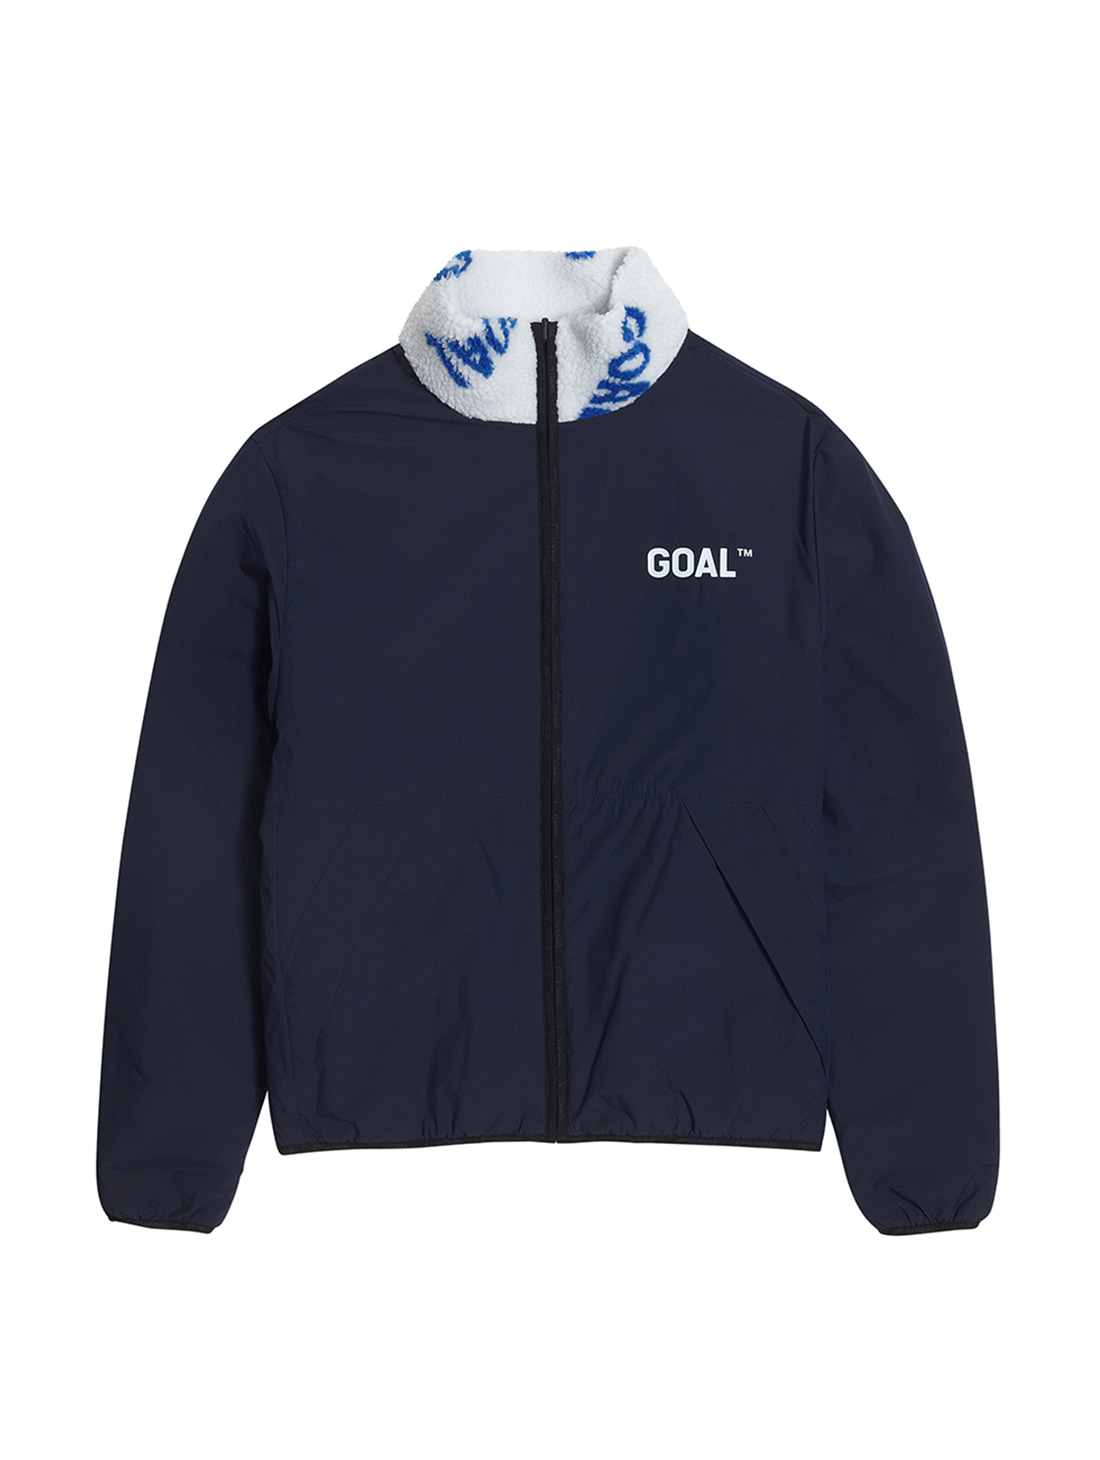 GOALSTUDIO (Sold Out) REVERSIBLE FLEECE JACKET - WHITE/NAVY